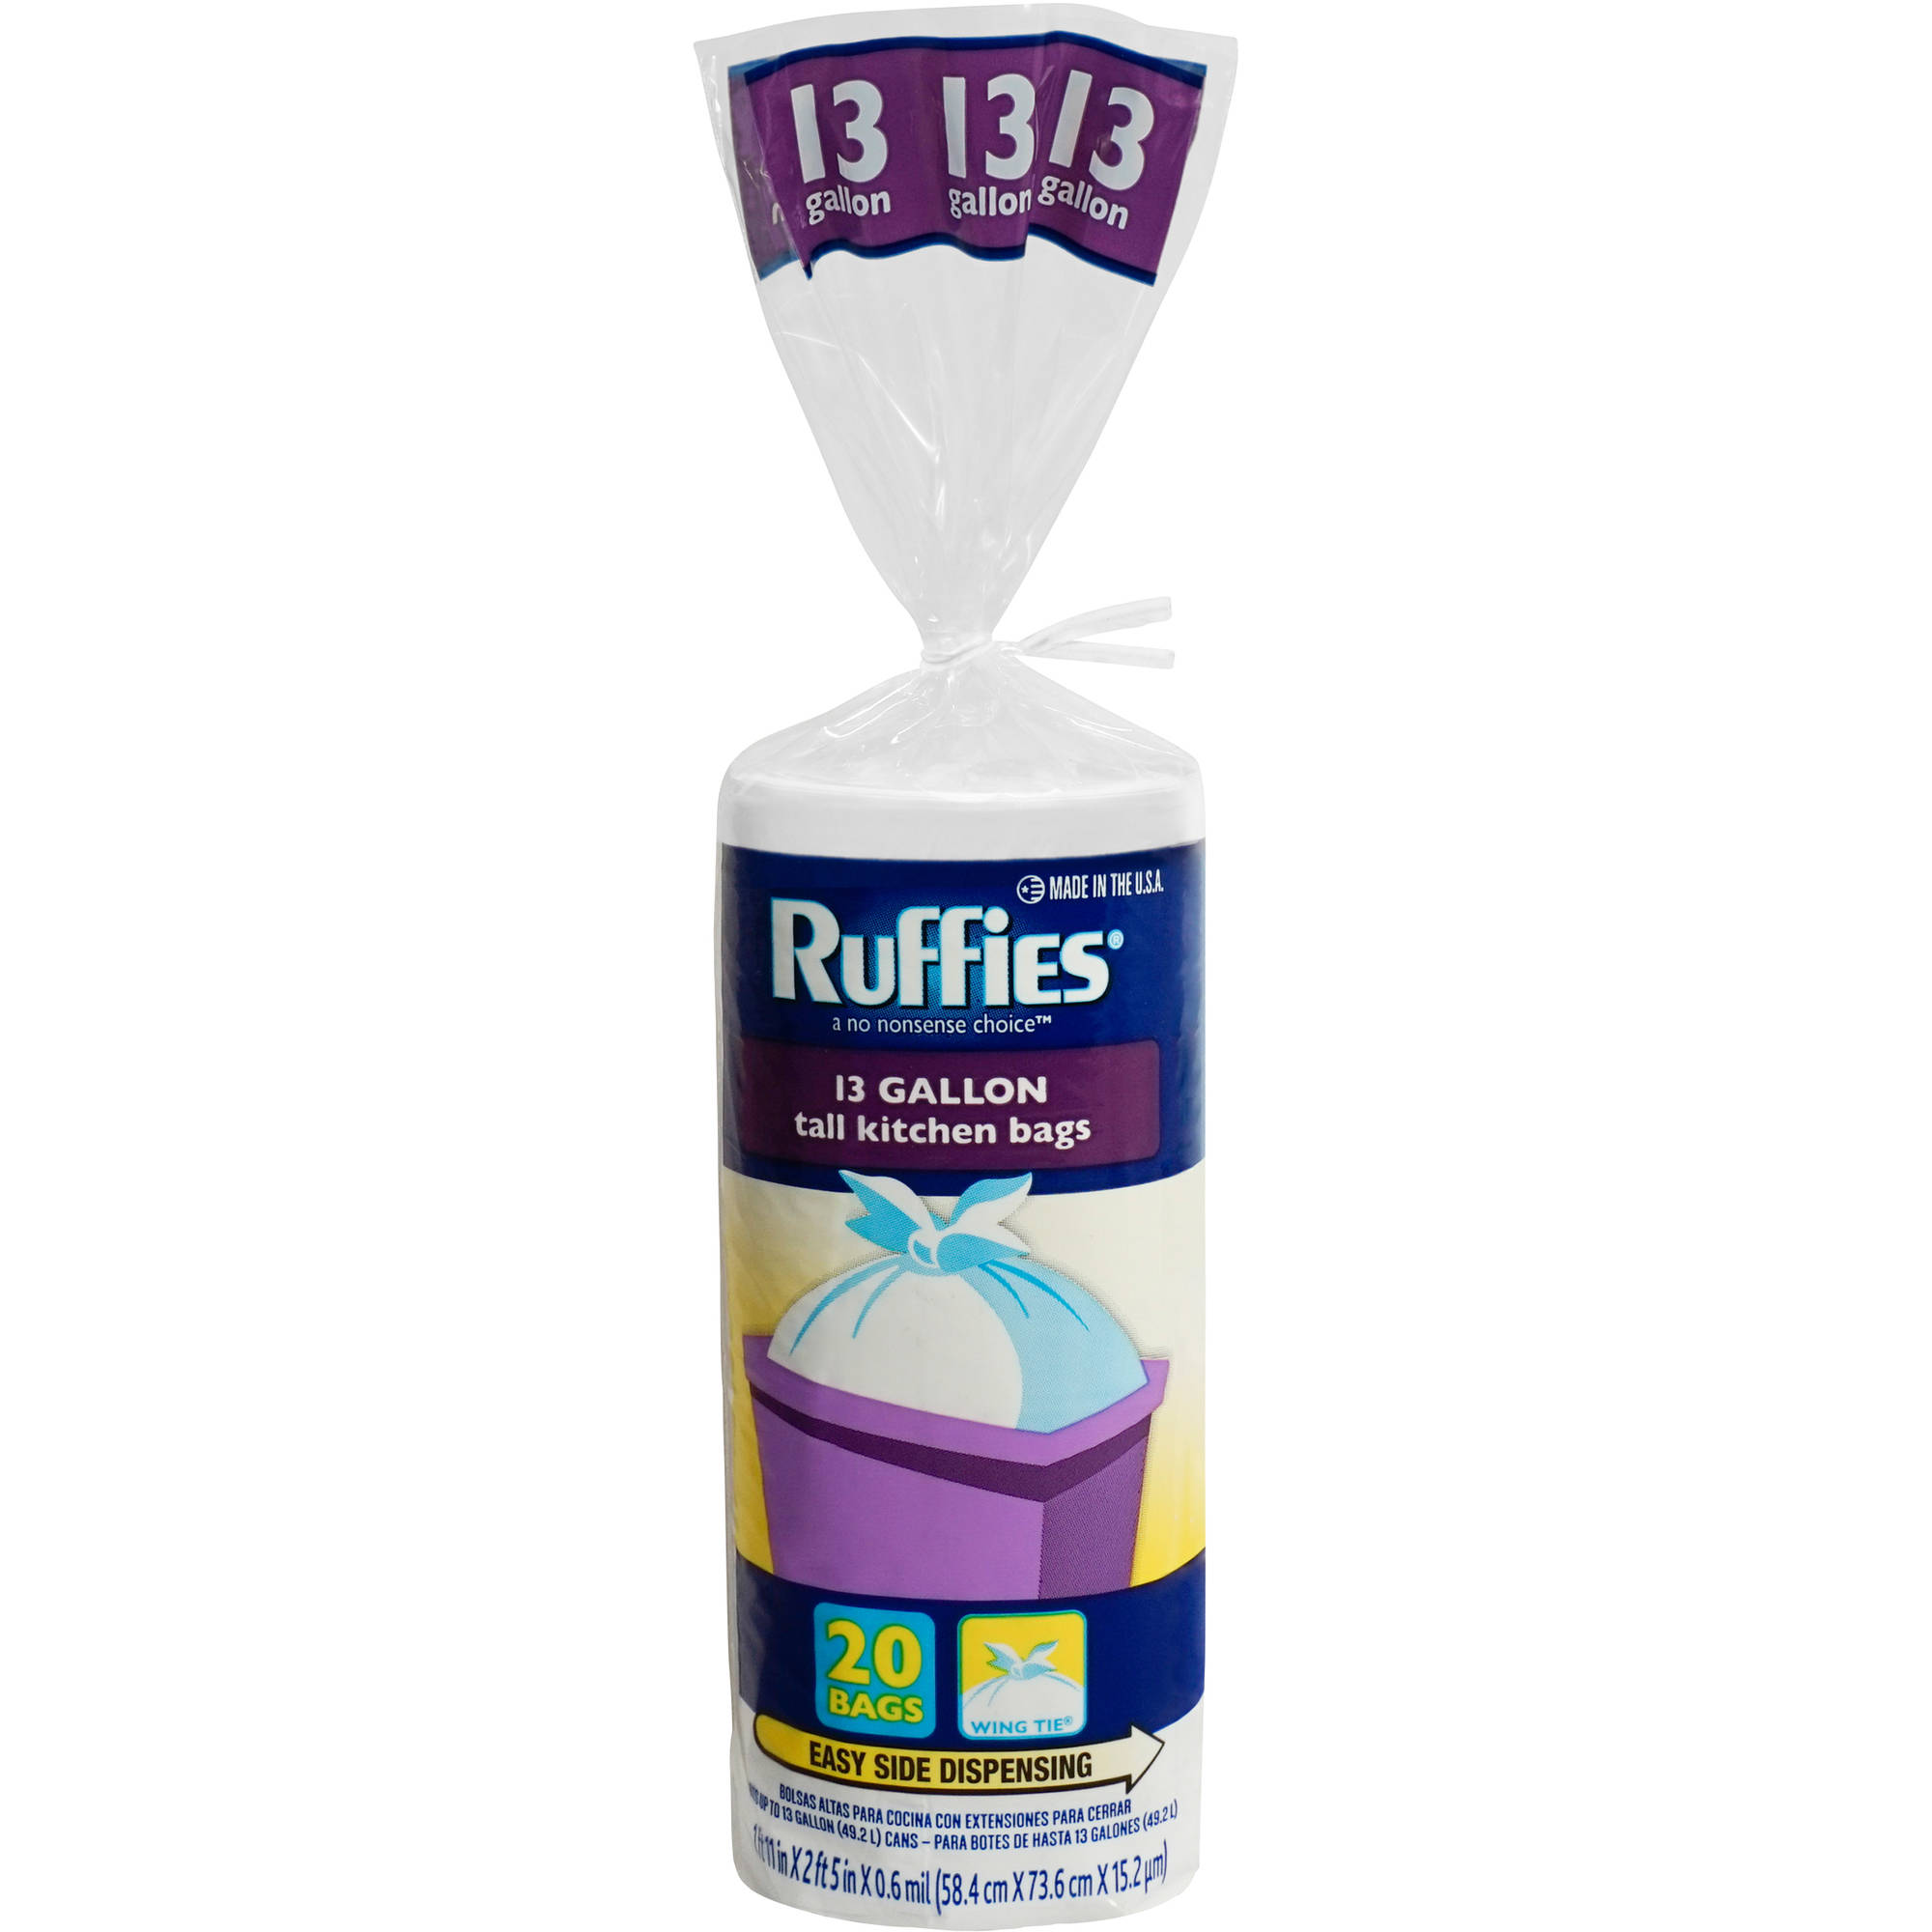 Ruffies Tall Kitchen Trash Bags, 13 gallon, 20 count